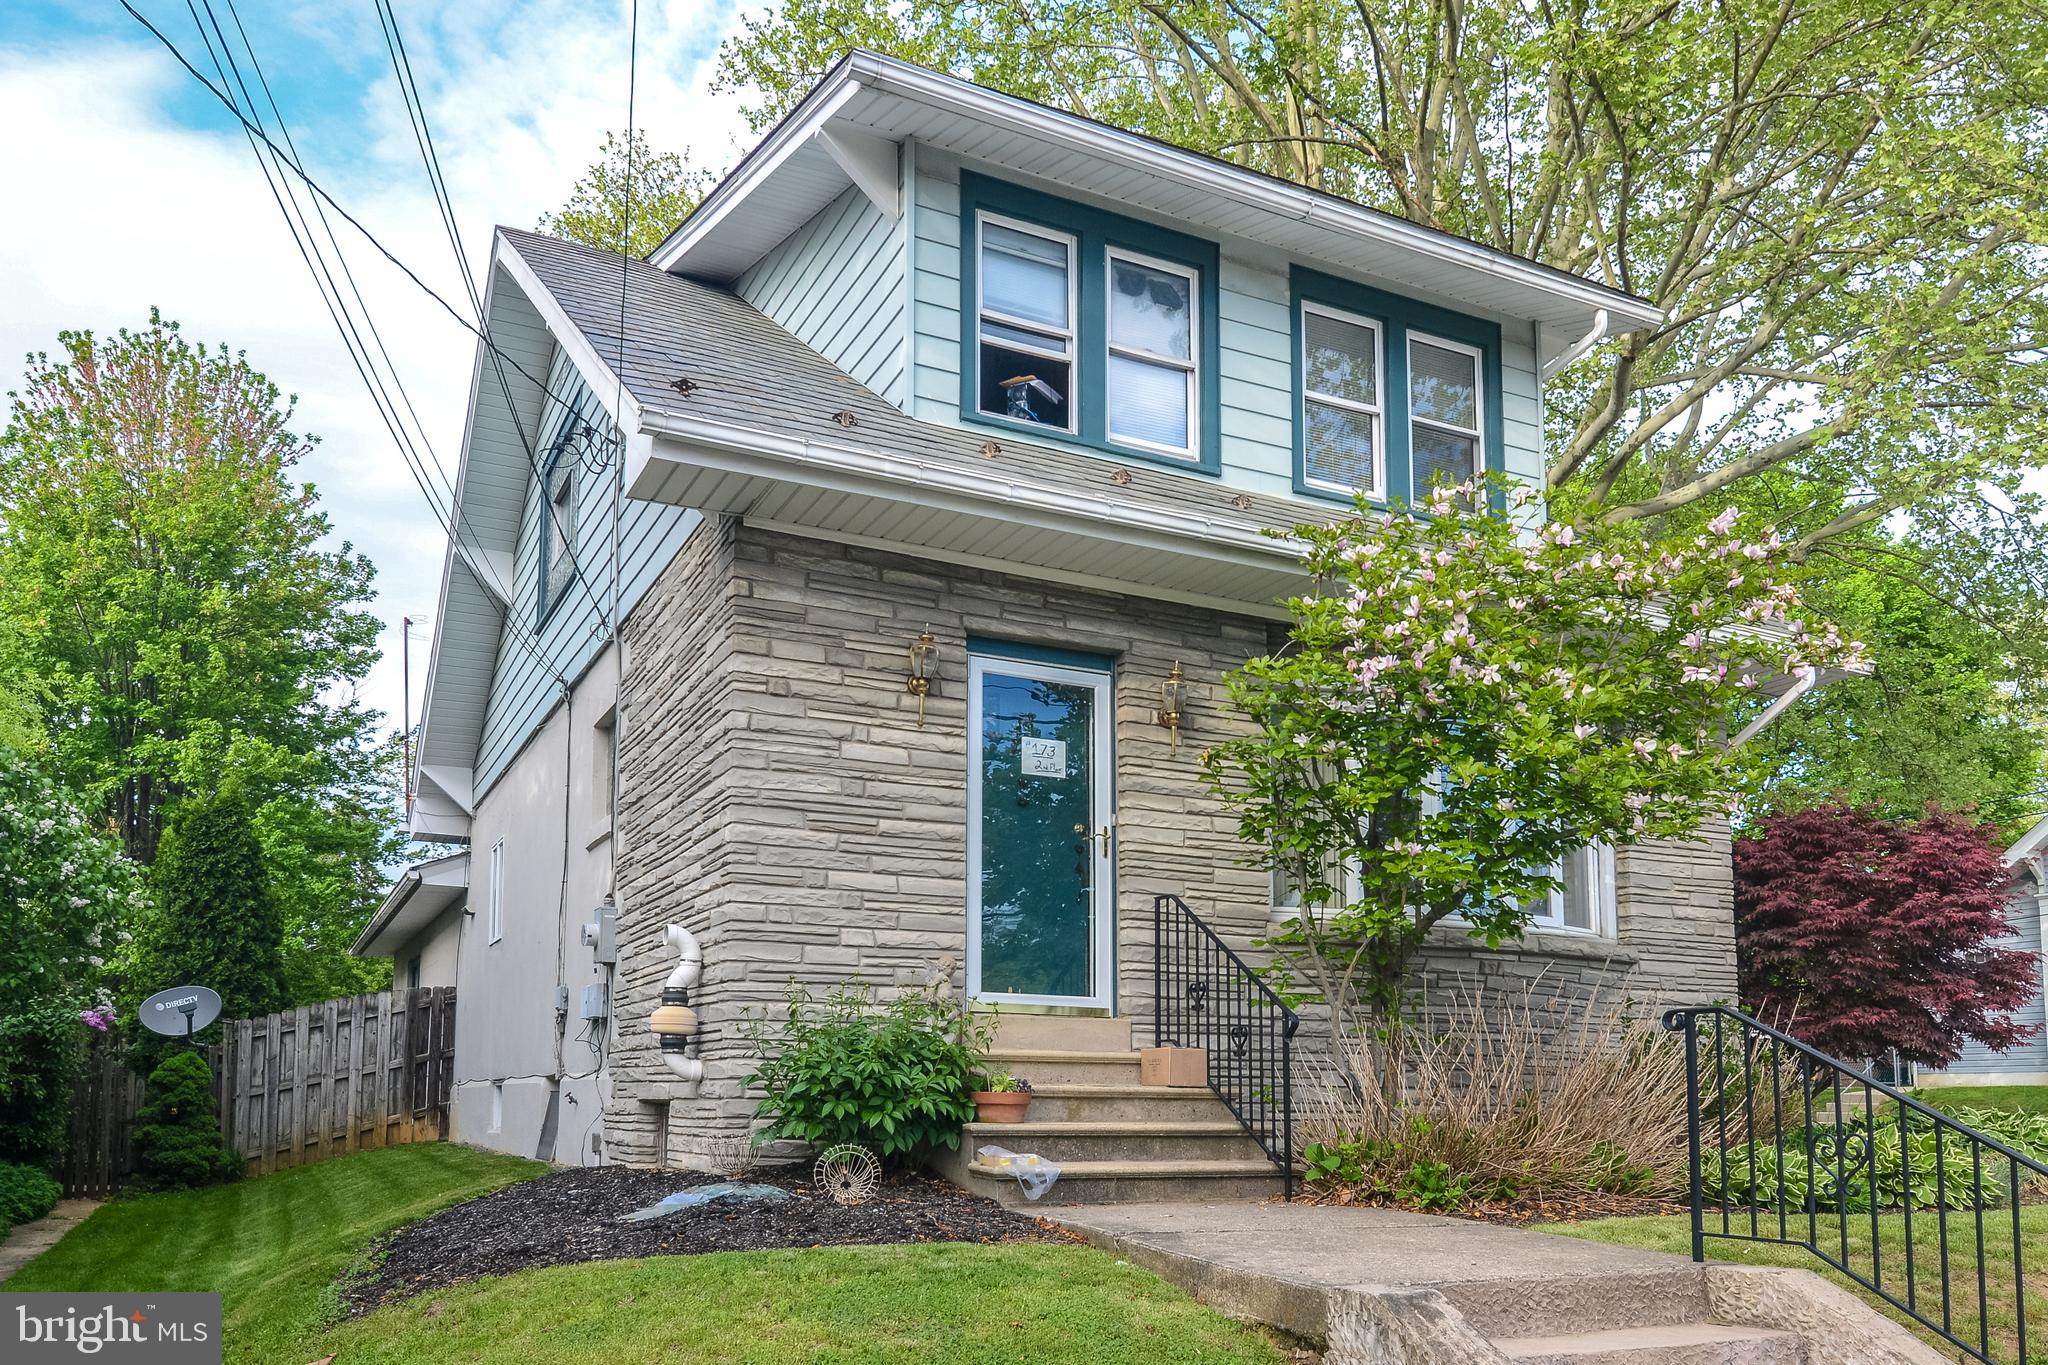 173 MAIN ST., MACUNGIE, PA 18062